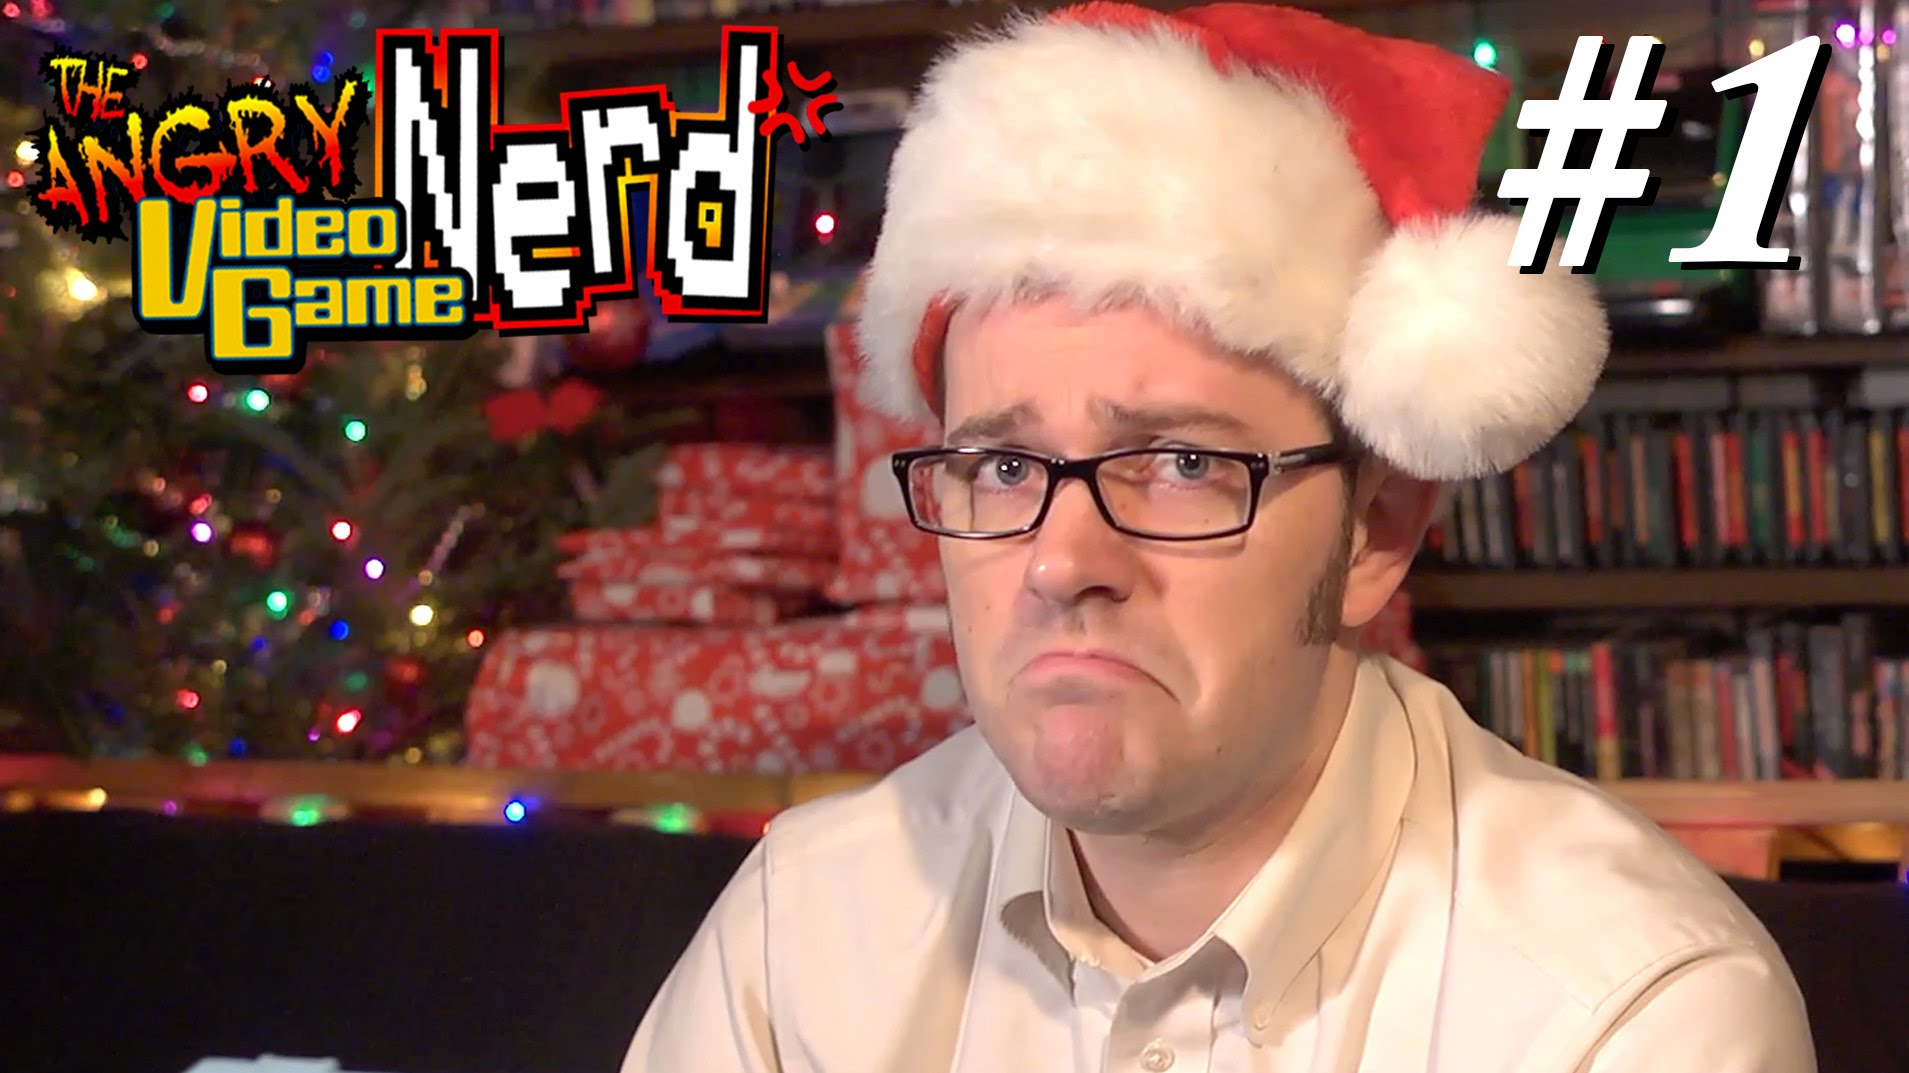 The Angry Video Game Nerd Tagin Dragon Tv Episode 2014 Imdb